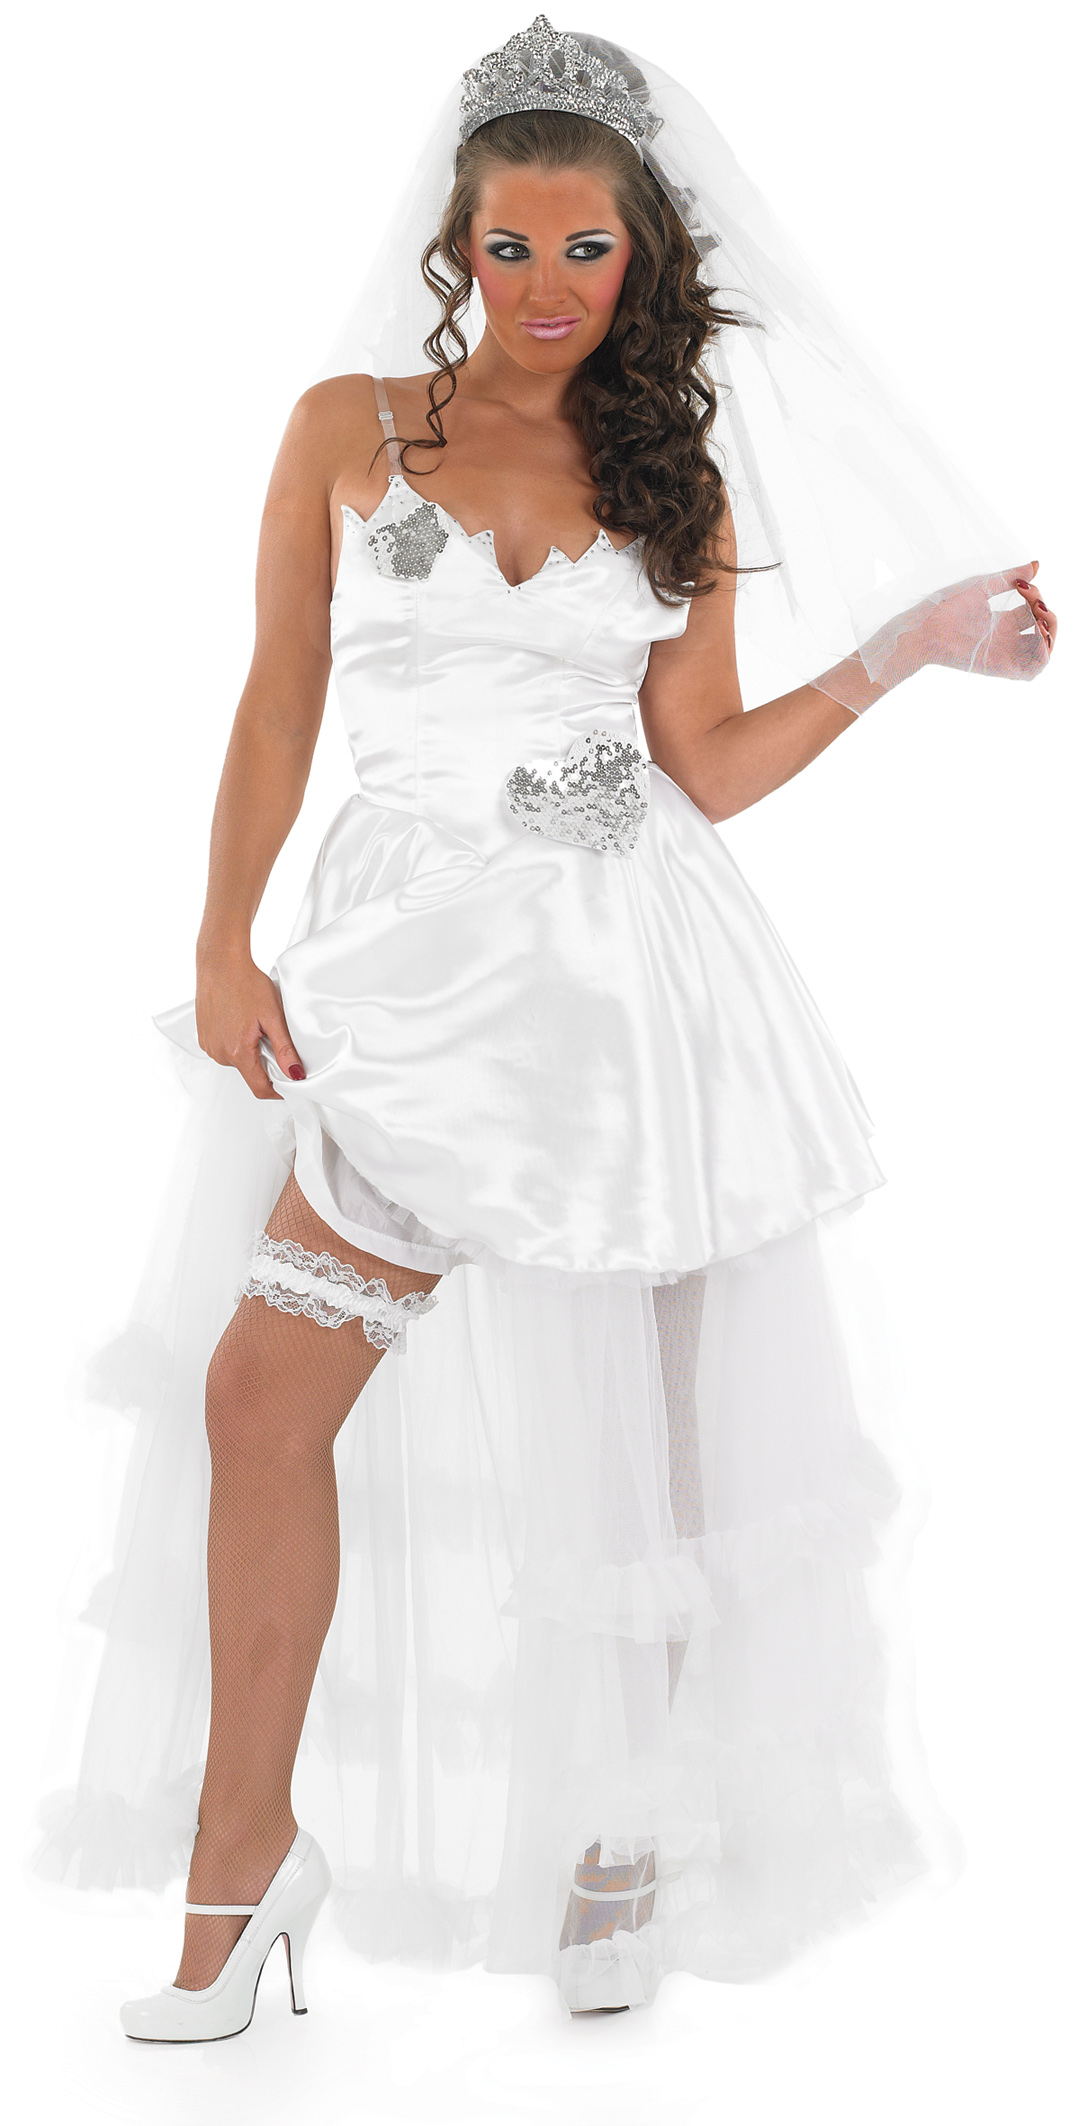 wedding dress halloween costume Thumbnail